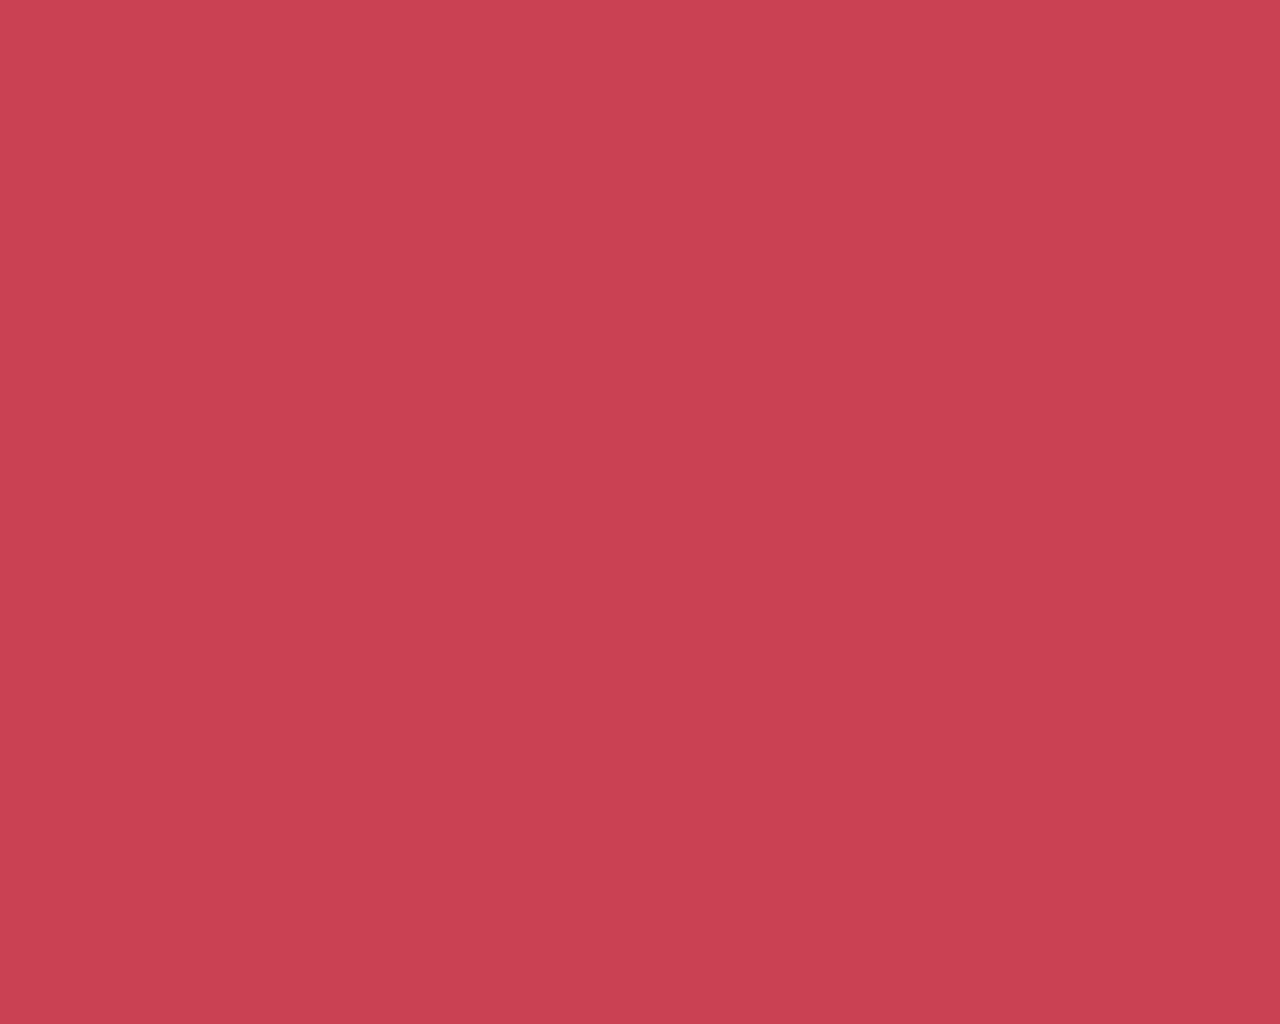 1280x1024 Brick Red Solid Color Background